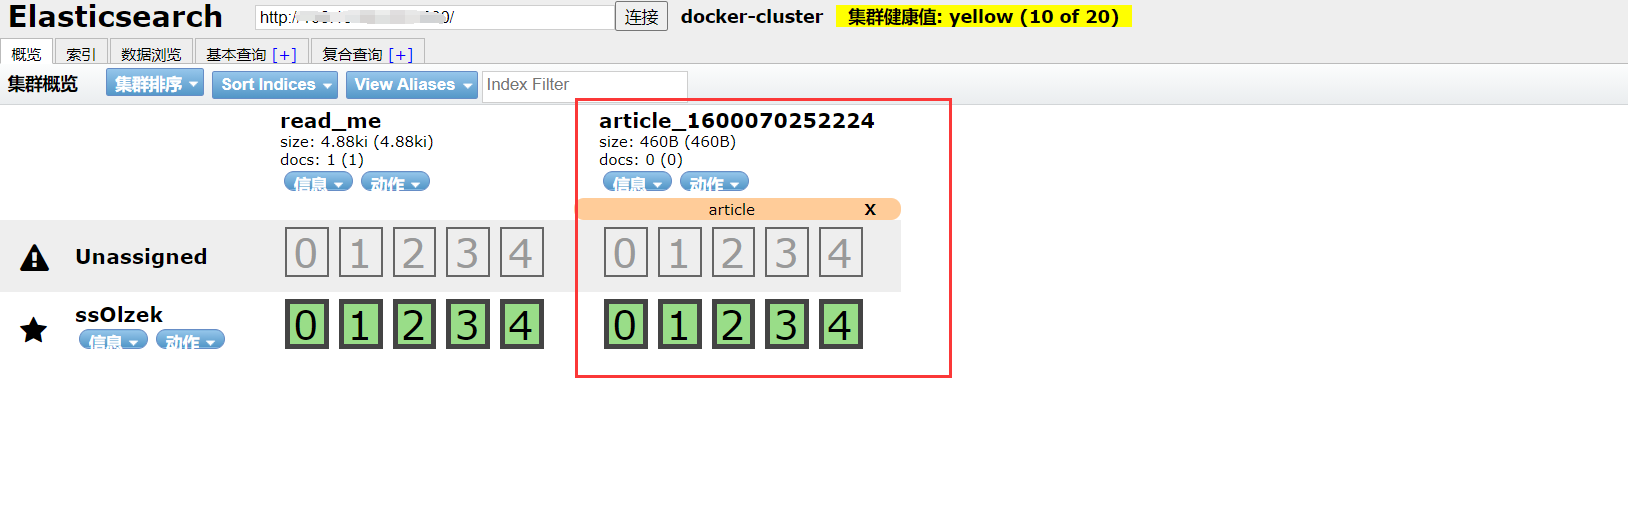 http://eightroes-doc.oss-cn-beijing.aliyuncs.com/img/acticle-index.png